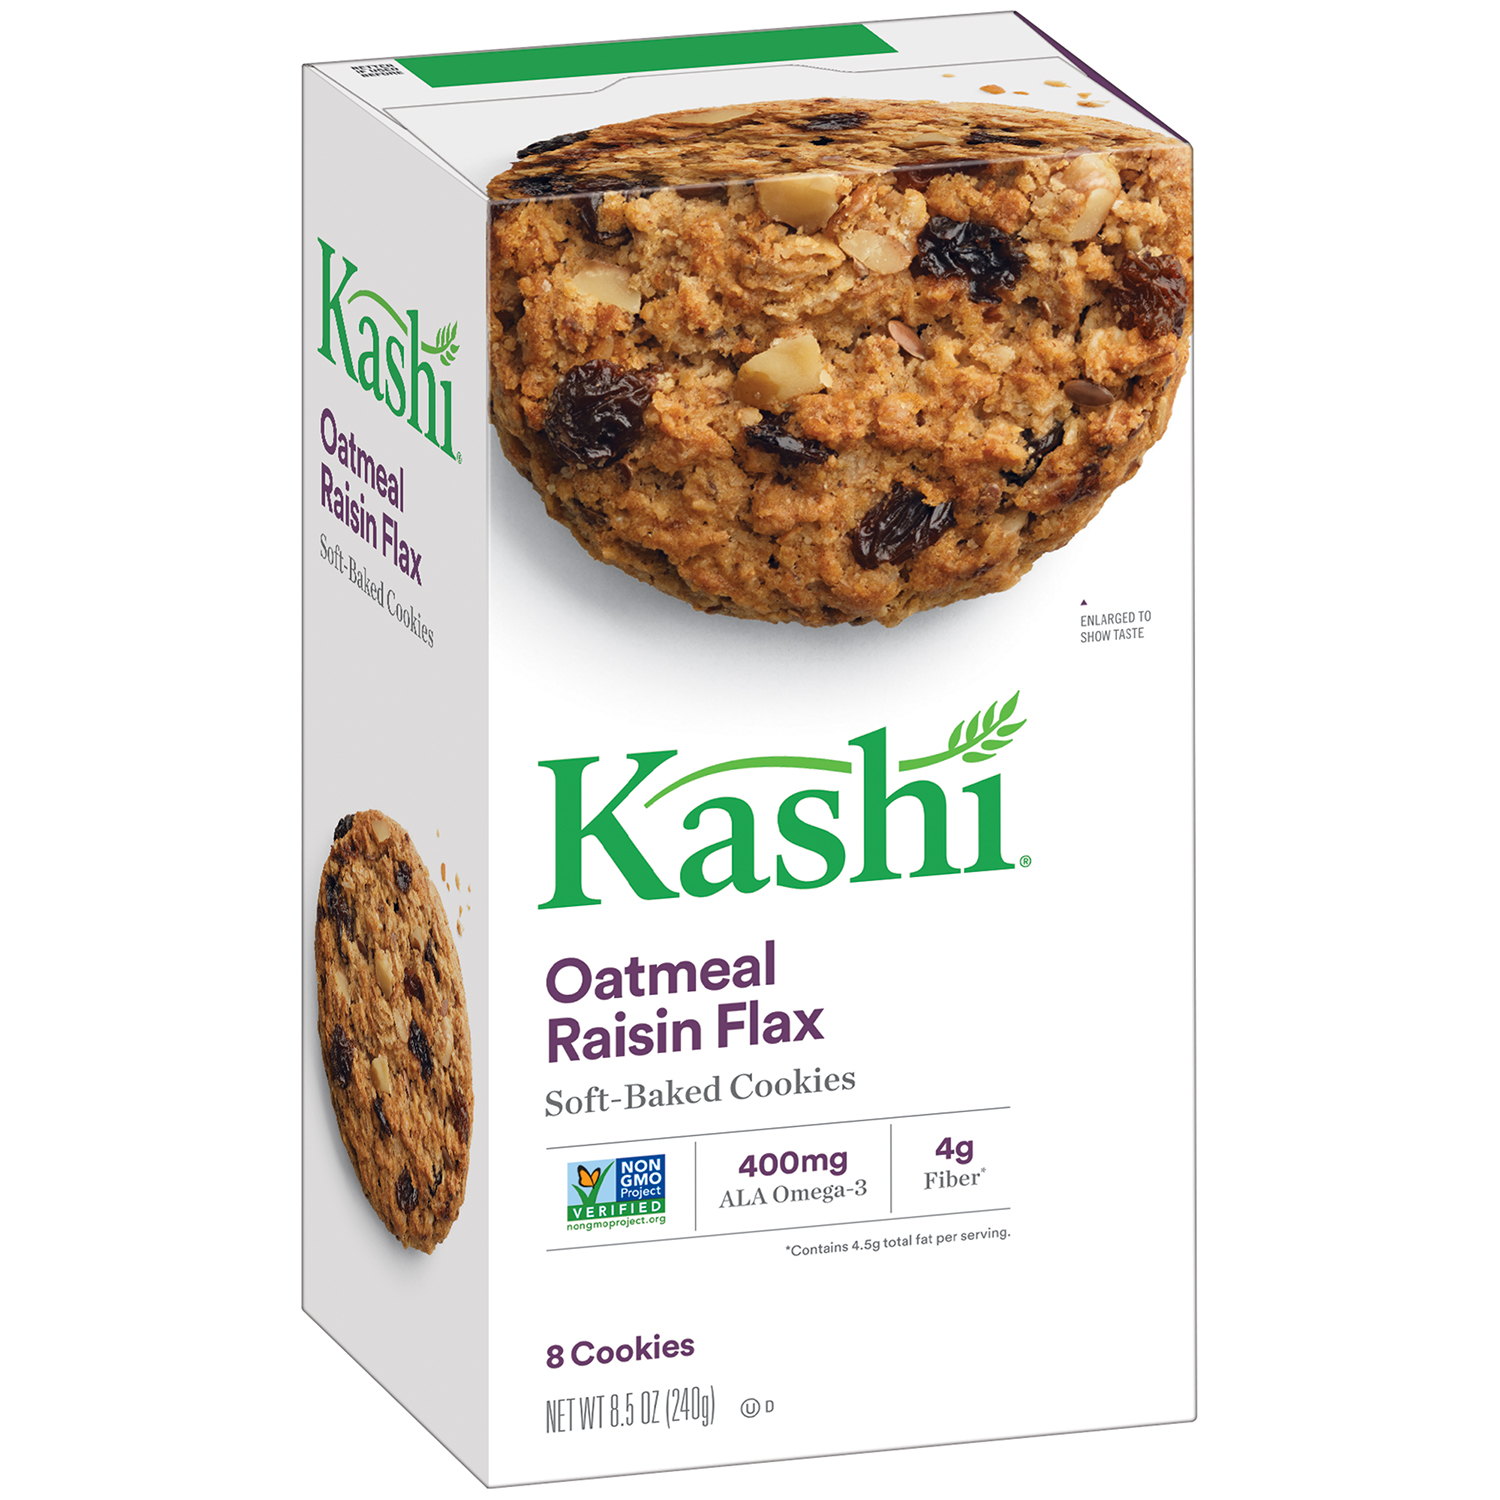 Kashi Oatmeal Raisin Flax Soft Baked Cookies, 8 count, 8.5 oz